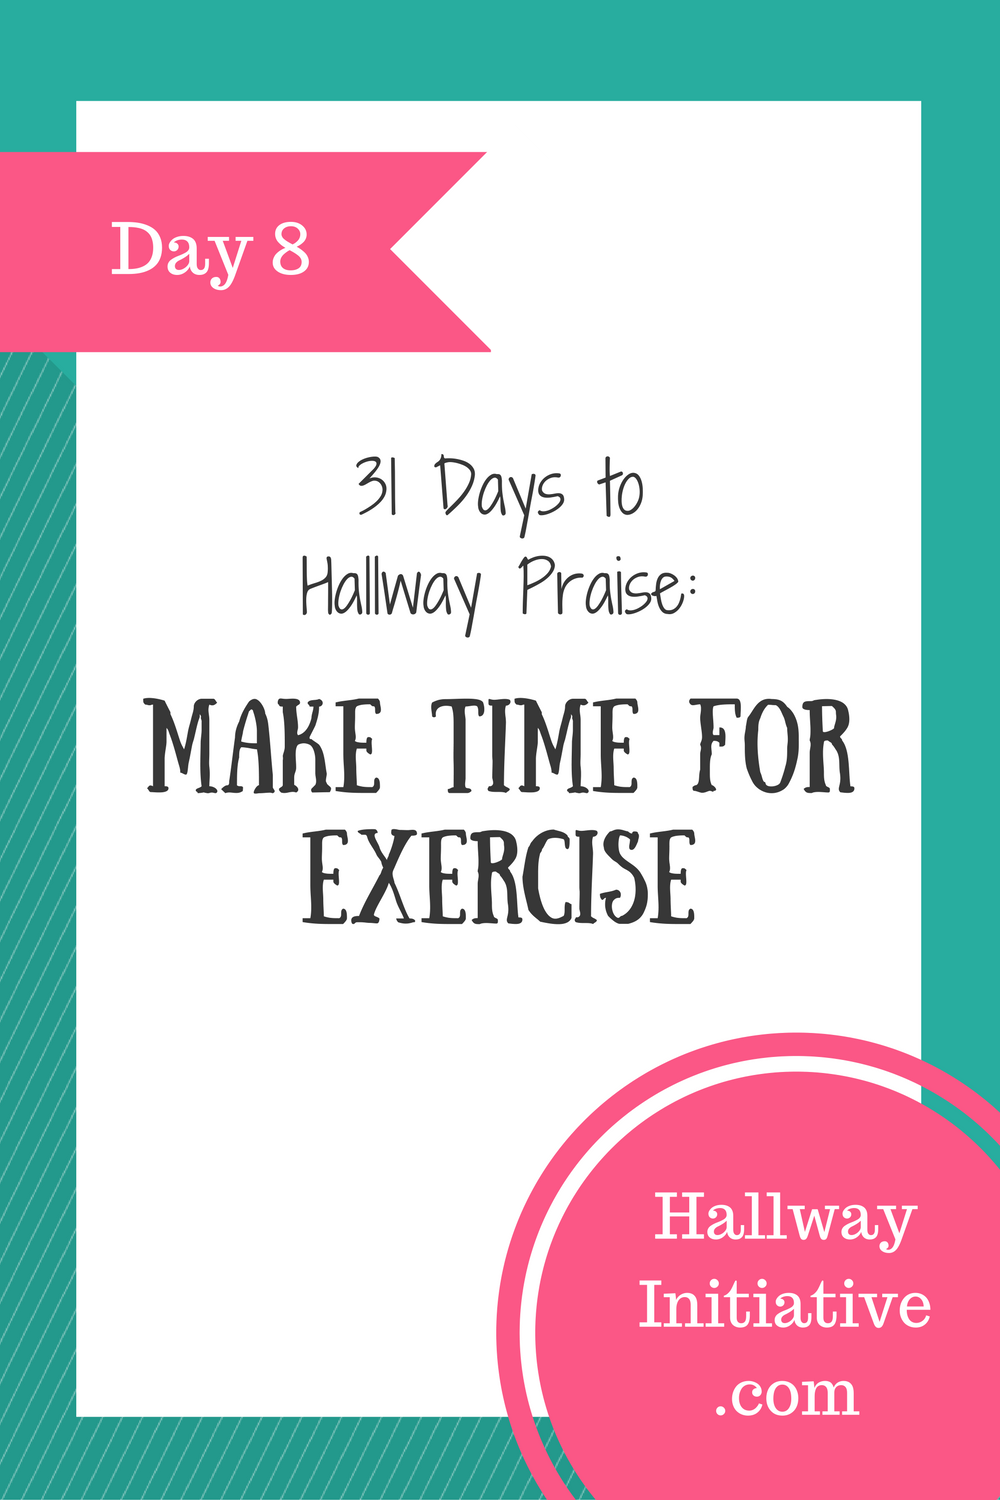 Day 8: make time for exercise